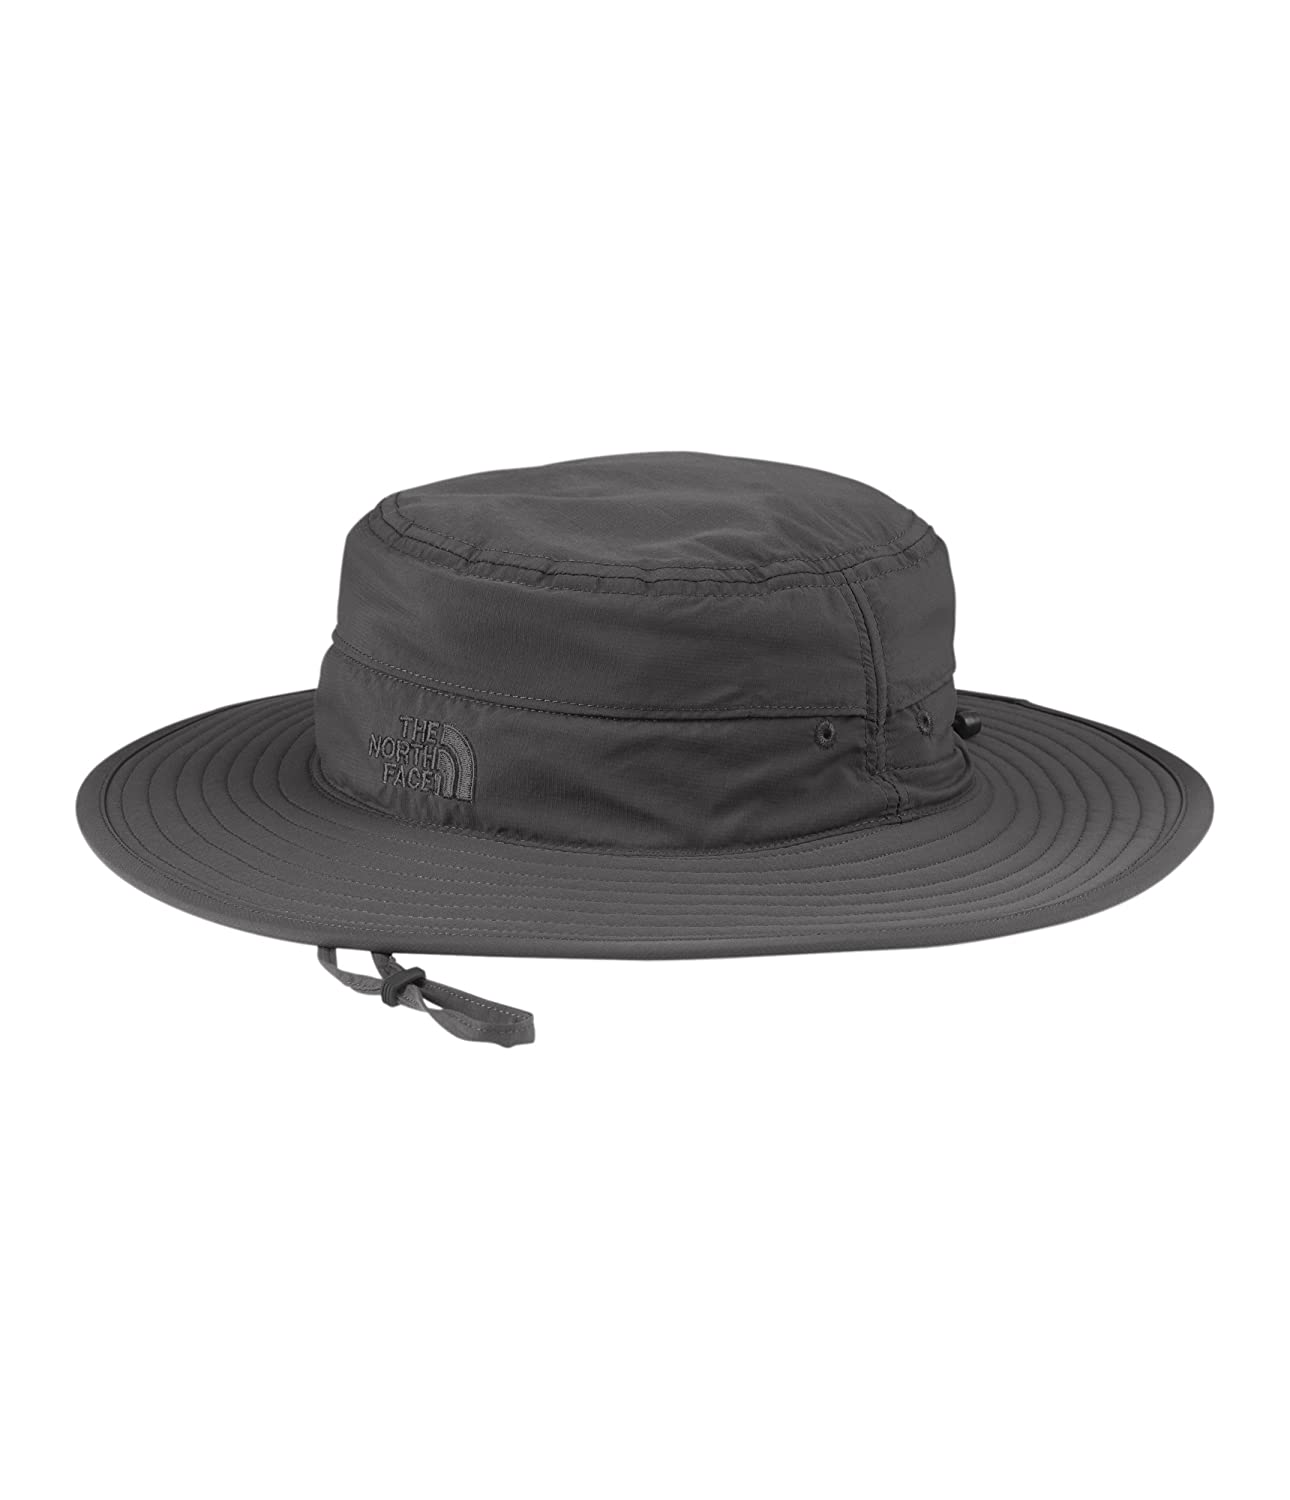 acb961b7ab0 The North Face Horizon Breeze Brimmer Hat - Color  Graphite Grey - Size   OS